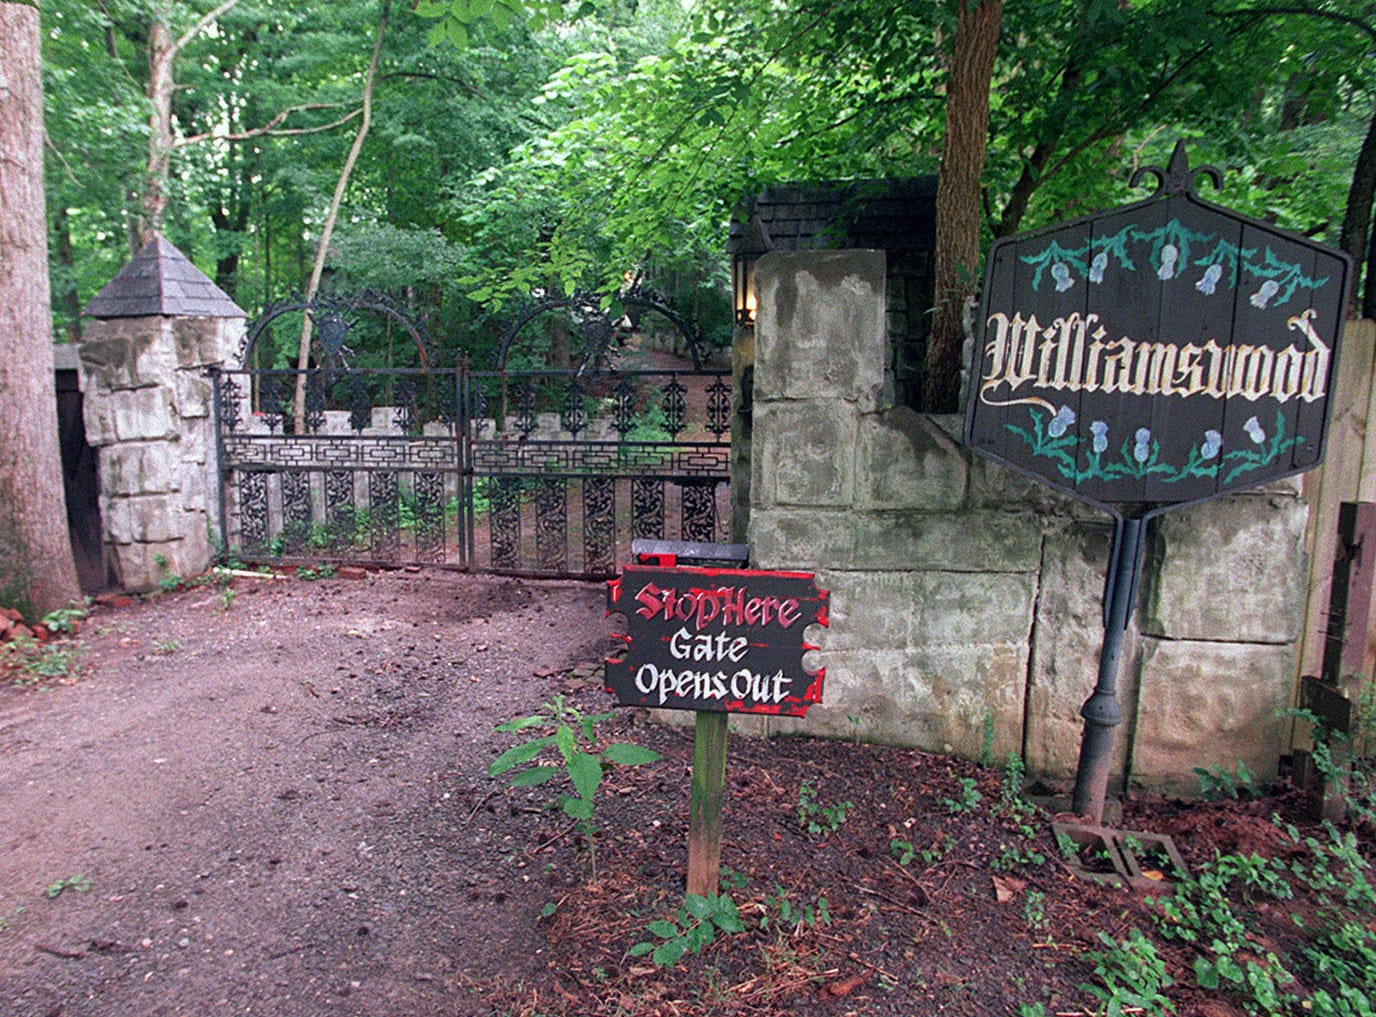 The gate to Williamswood, the home of Julia Tucker in South Knoxville, pictured June 28, 2000.